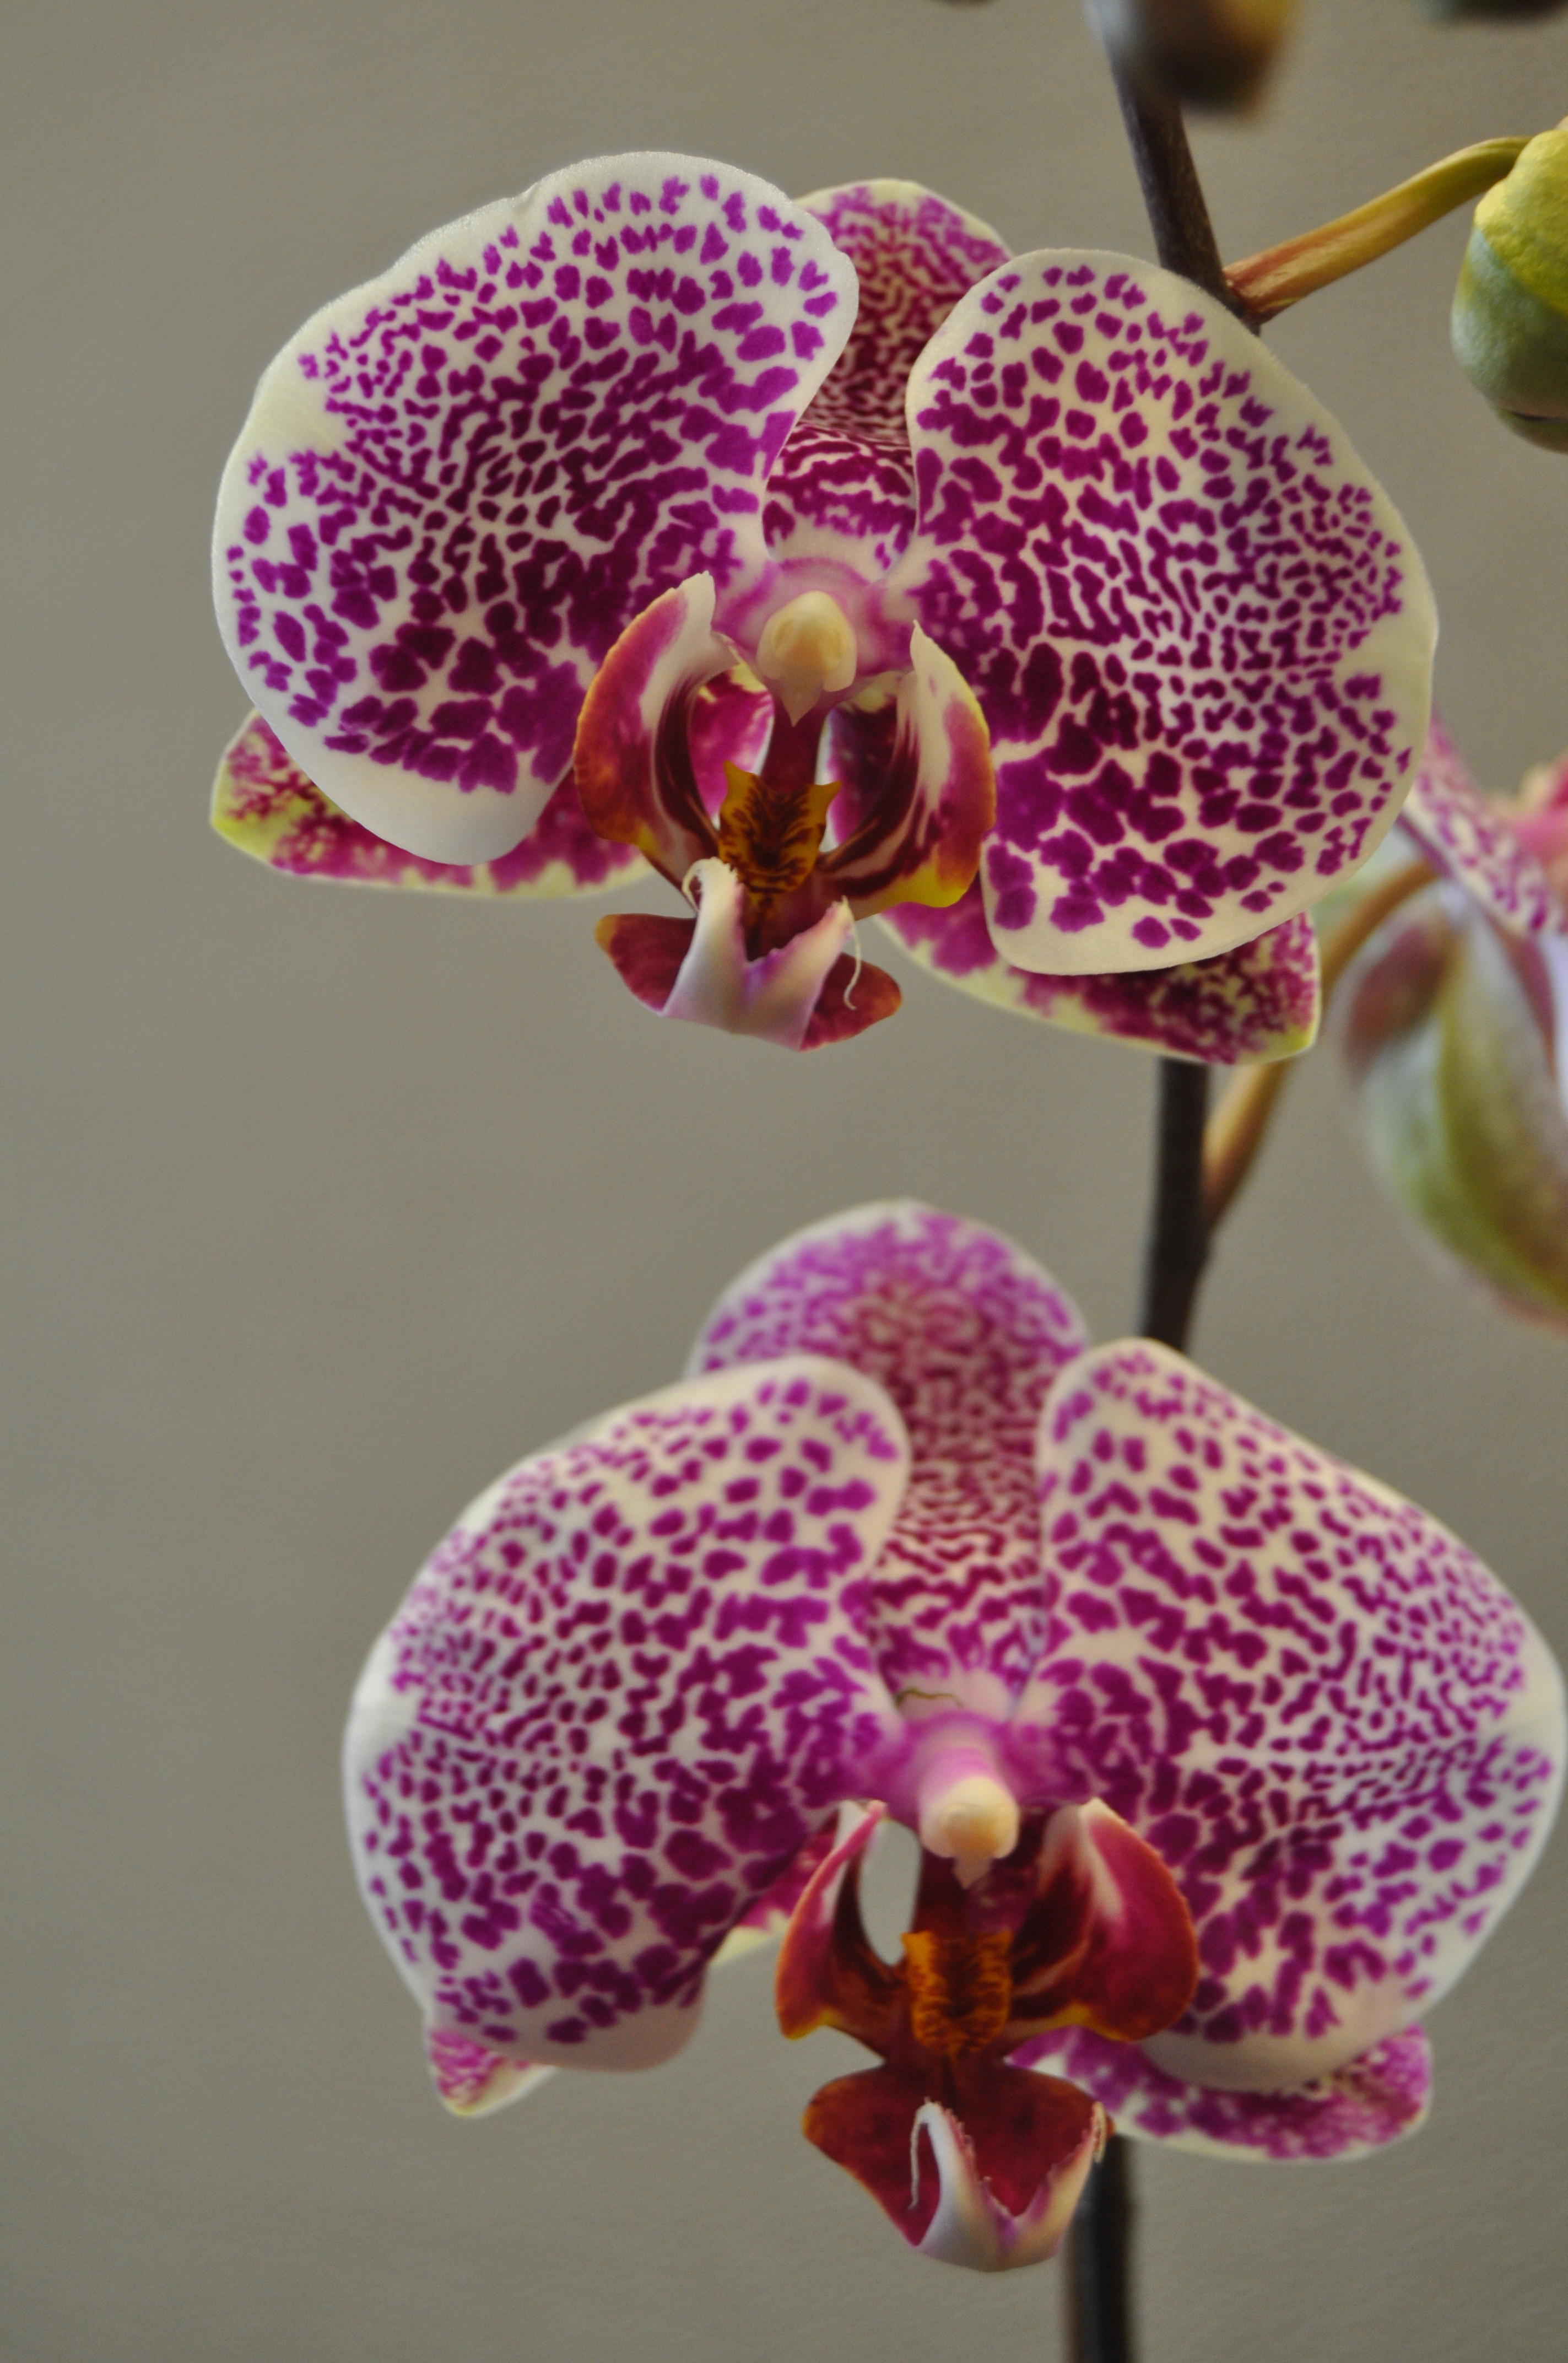 Exotic Orchids Can Grow Nicely Even In Spokane The Spokesman Review